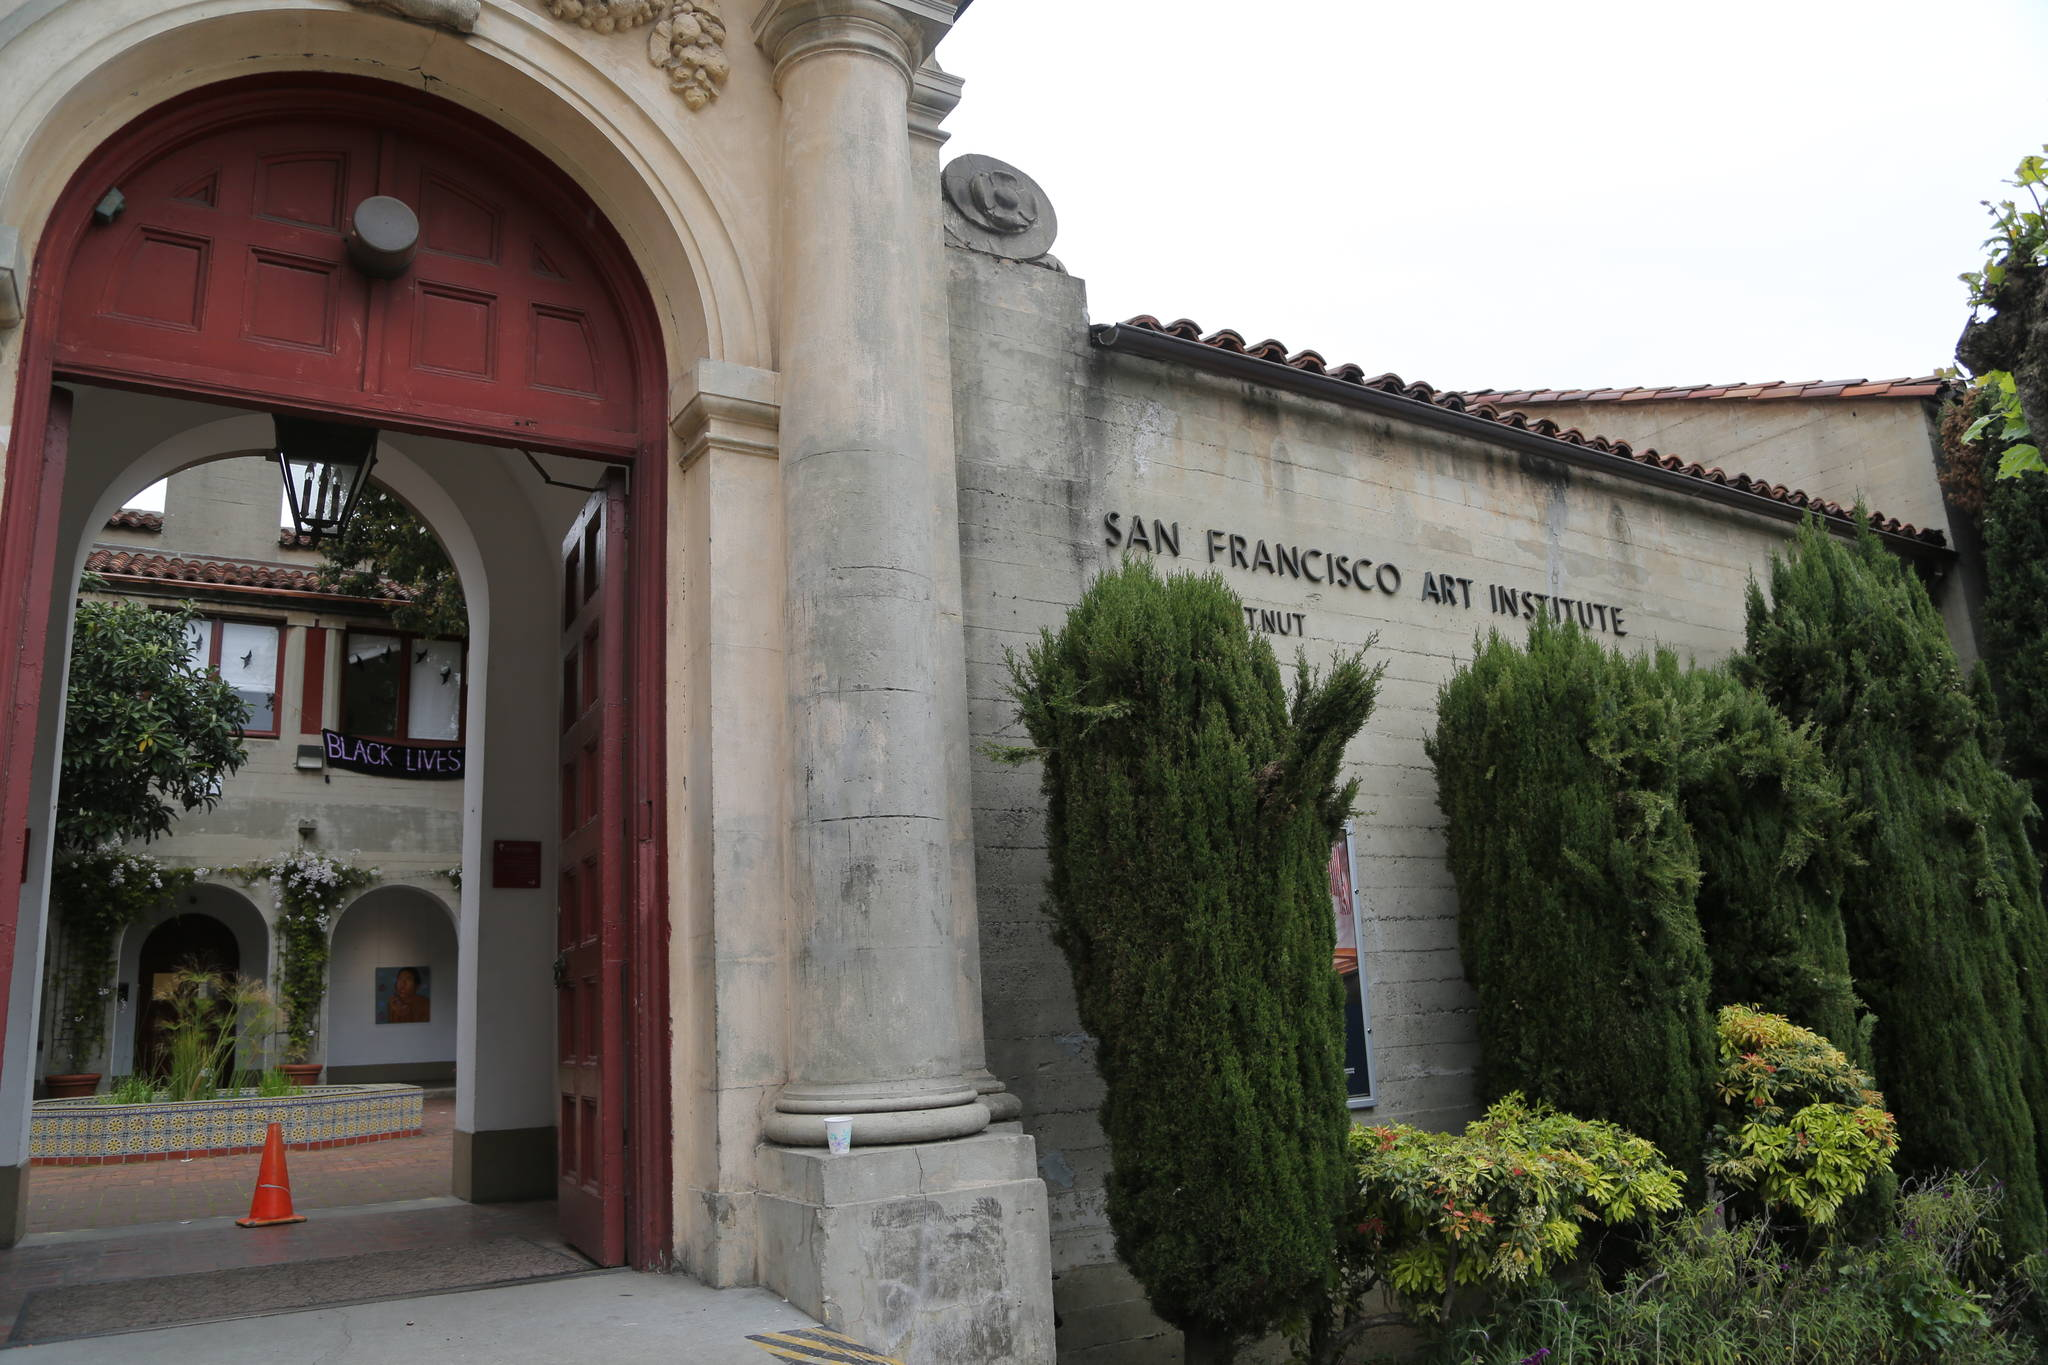 Faced with a cash flow problem and potential foreclosure on its property, the San Francisco Art Institute is raising funds to continue operations. (James Chan/Special to S.F. Examiner)